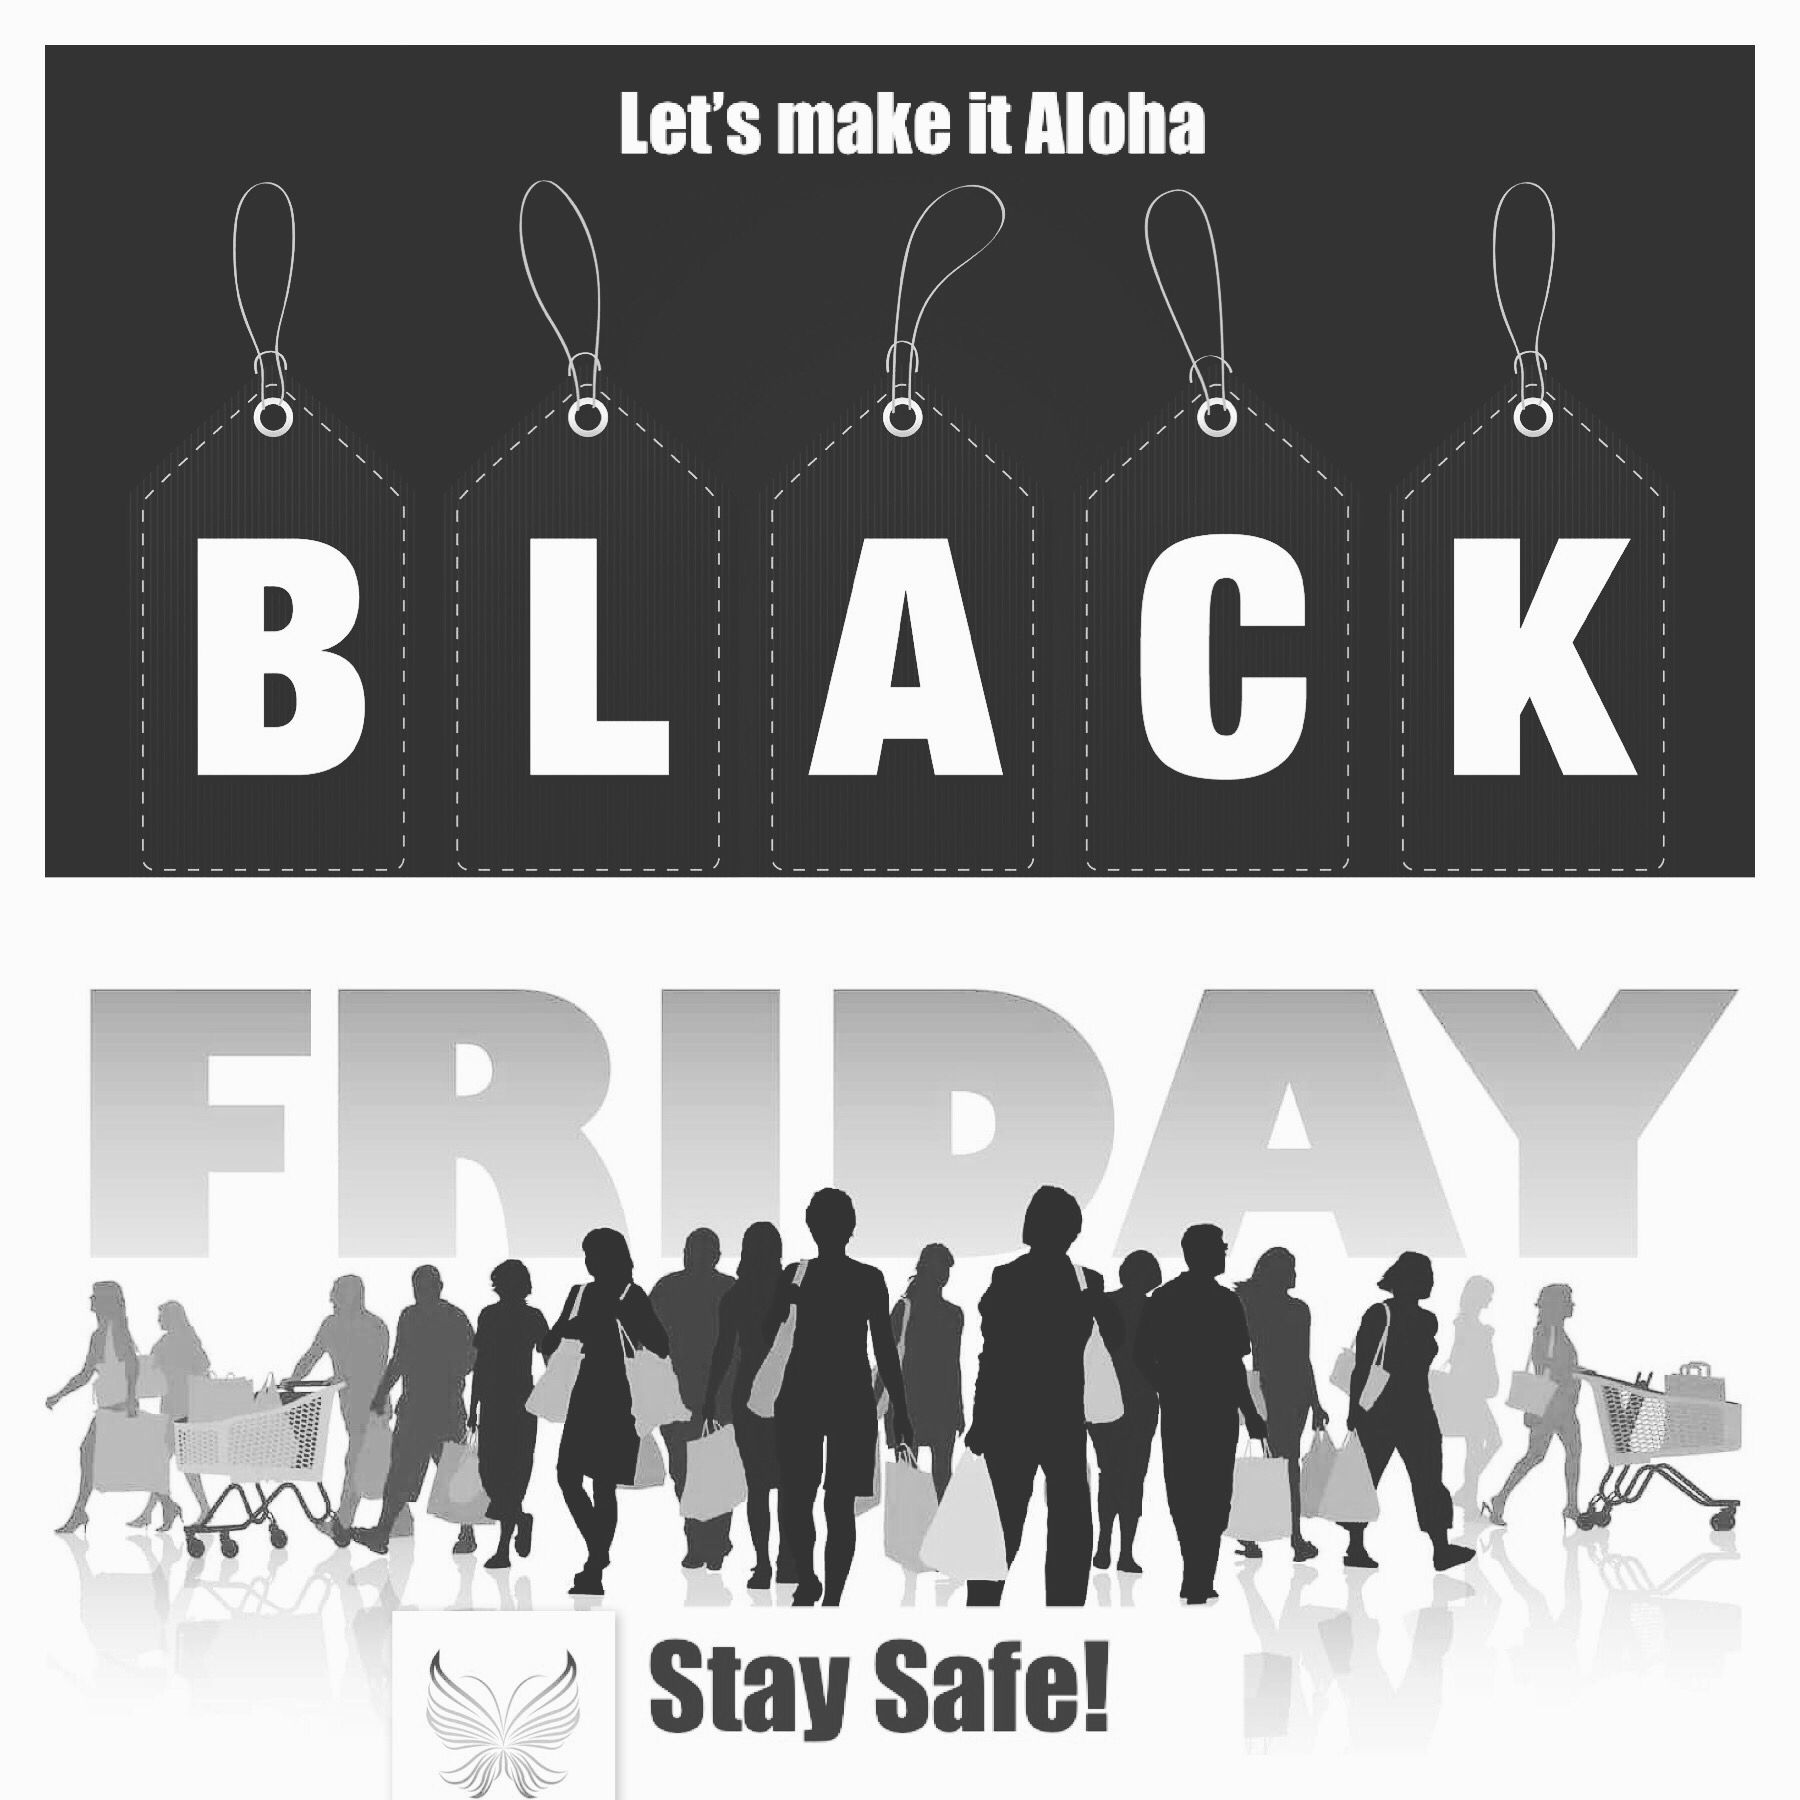 BlackFriday2018 - the most dangerous shopping day of the year. For  decades a5780b5ae8d8d